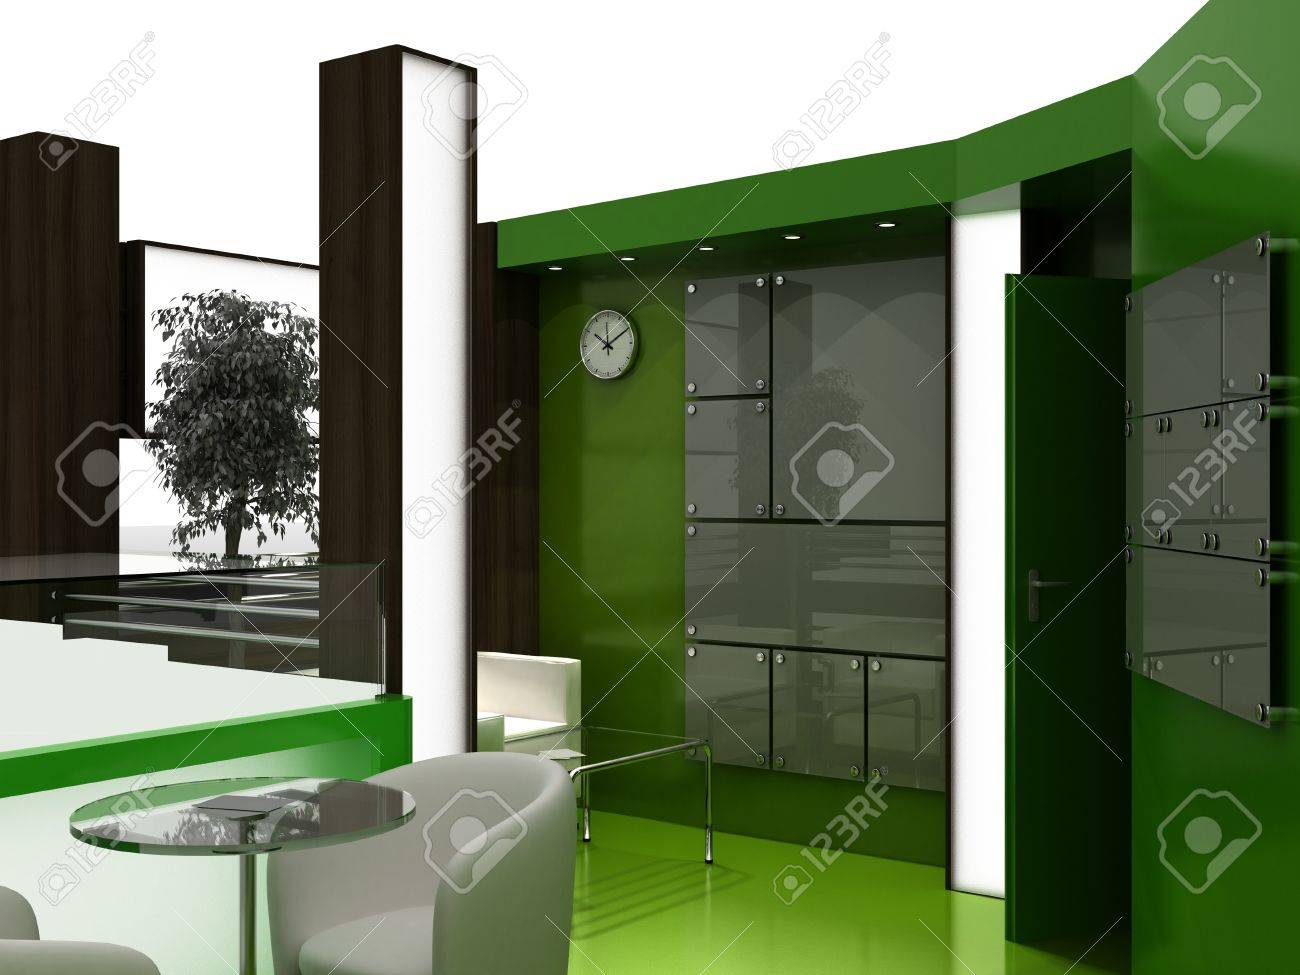 Exhibition Stand Interiors : Exhibition stand interior sample interiors series d stock